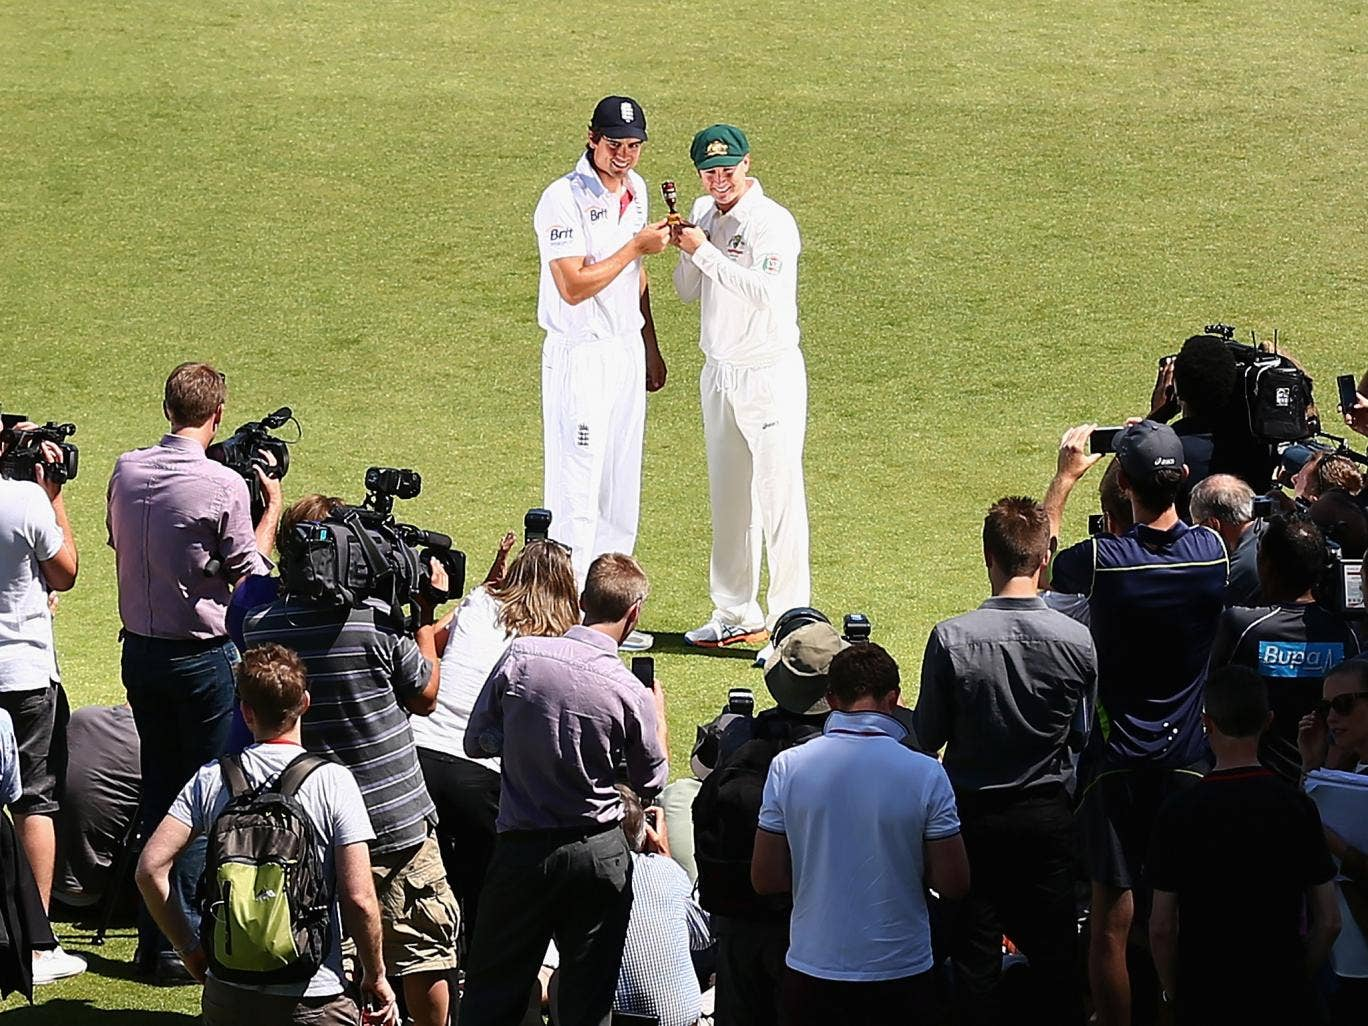 England captain Alastair Cook and Australia captain Michael Clarke pose with the Ashes urn